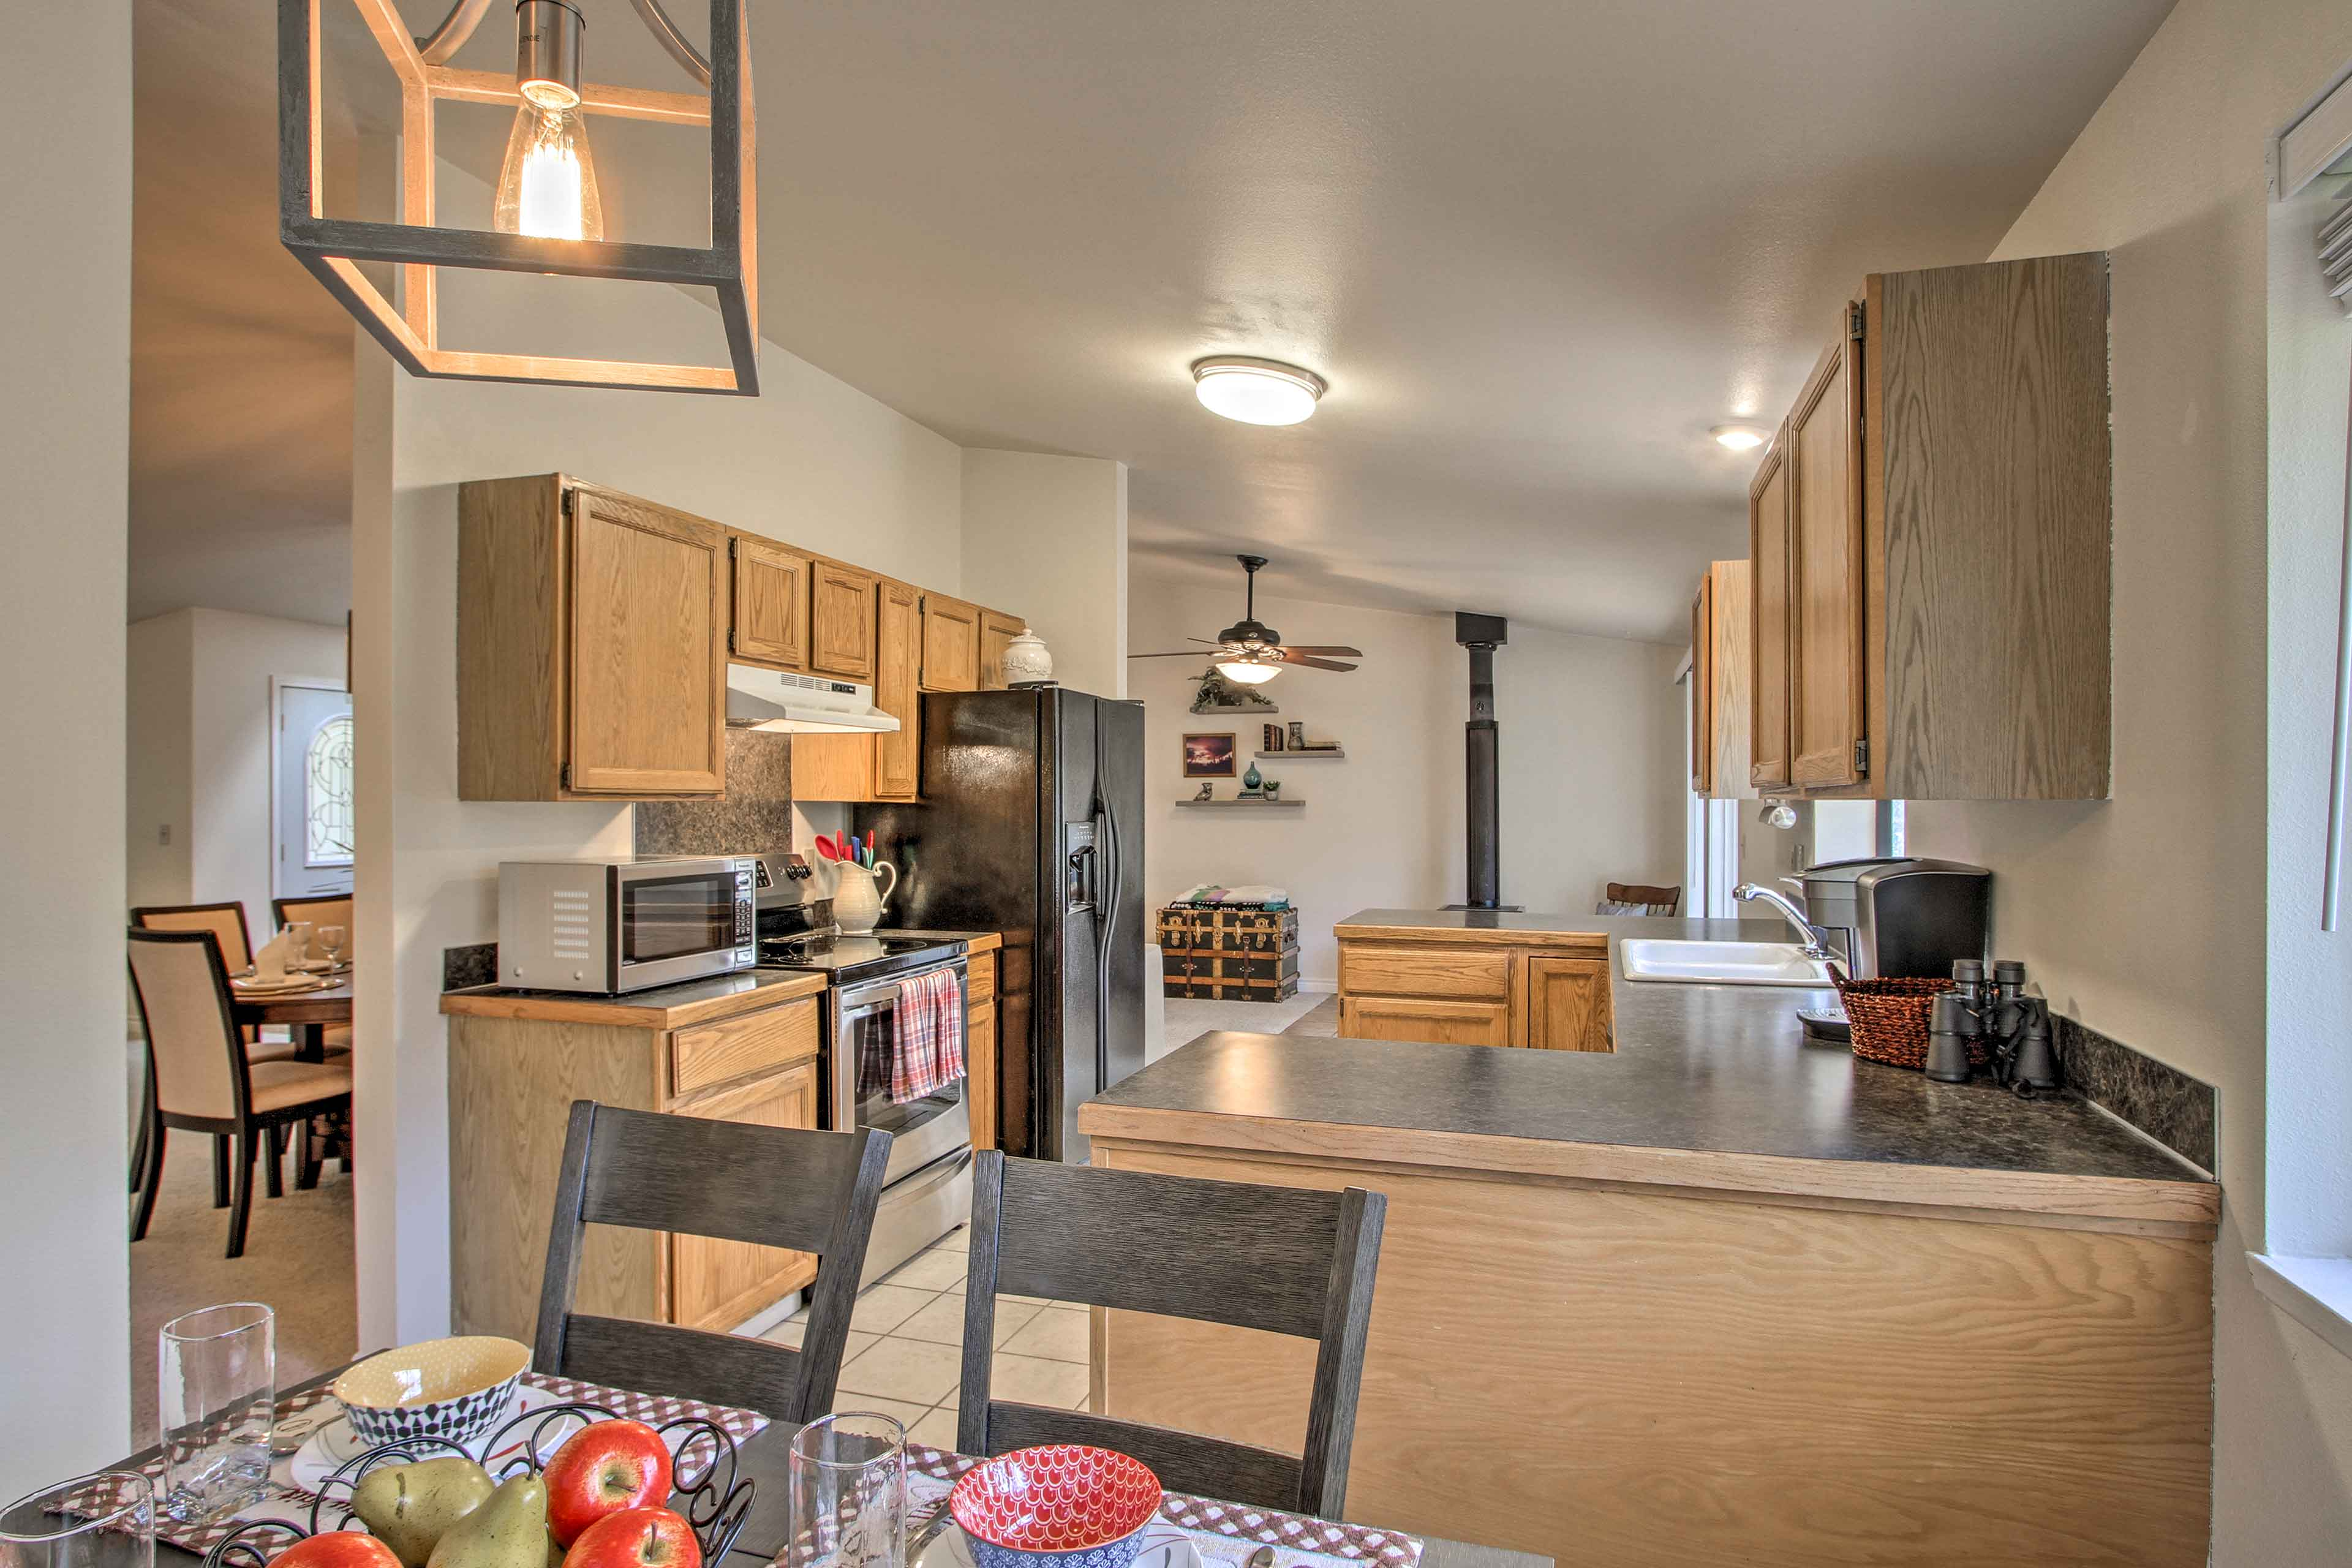 Fully equipped, this kitchen can handle all your favorite recipes.